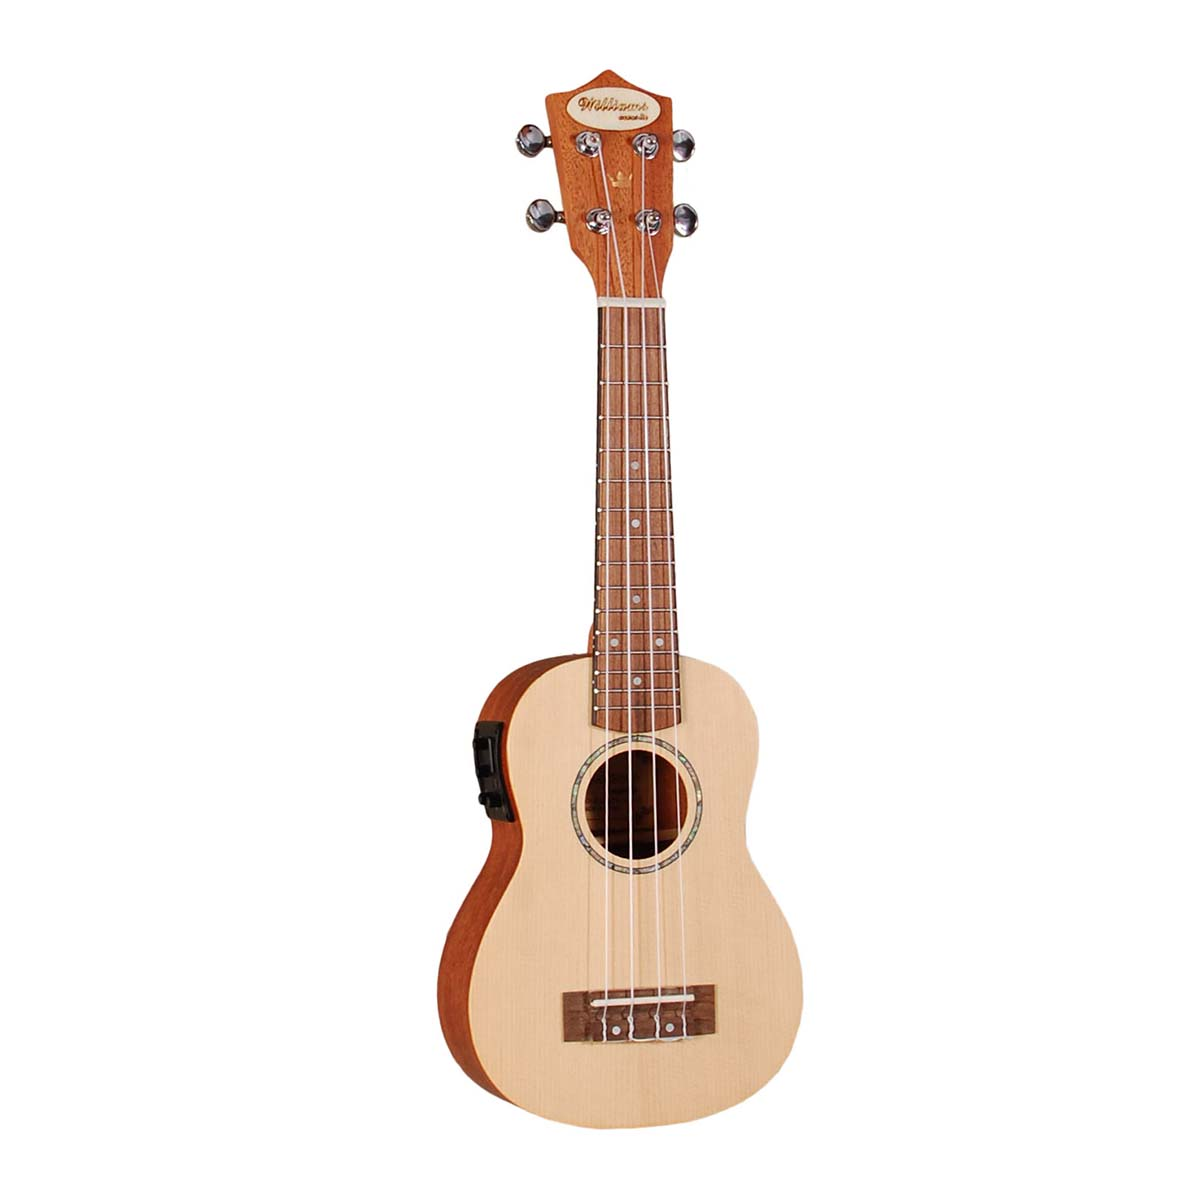 Køb Williams Acoustic EU200S-EQ v2 sopran ukulele til 999,00 kr.